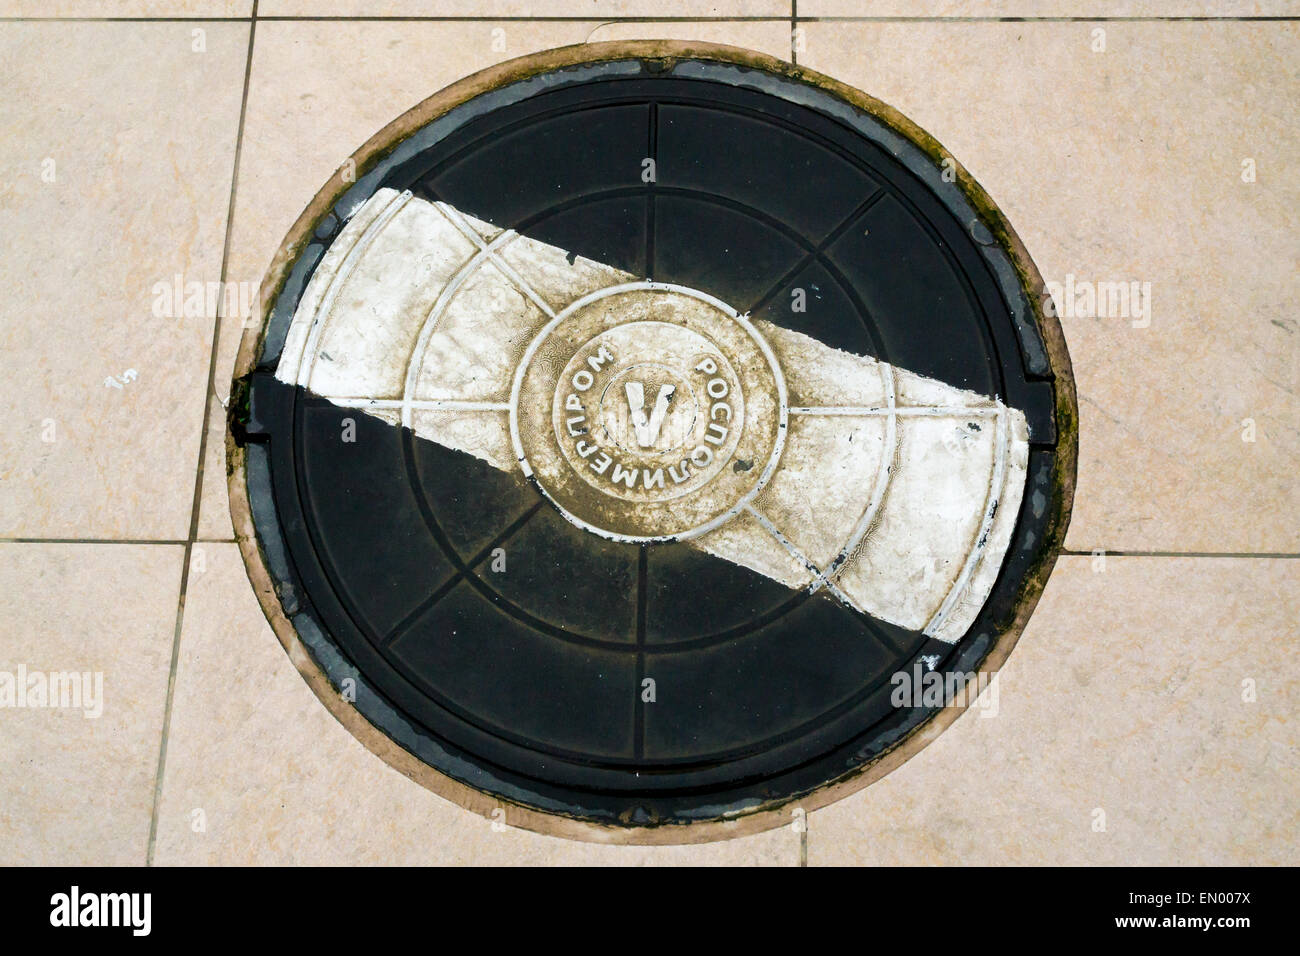 Black and White manhole cover on a tiled cemented walkway - Stock Image